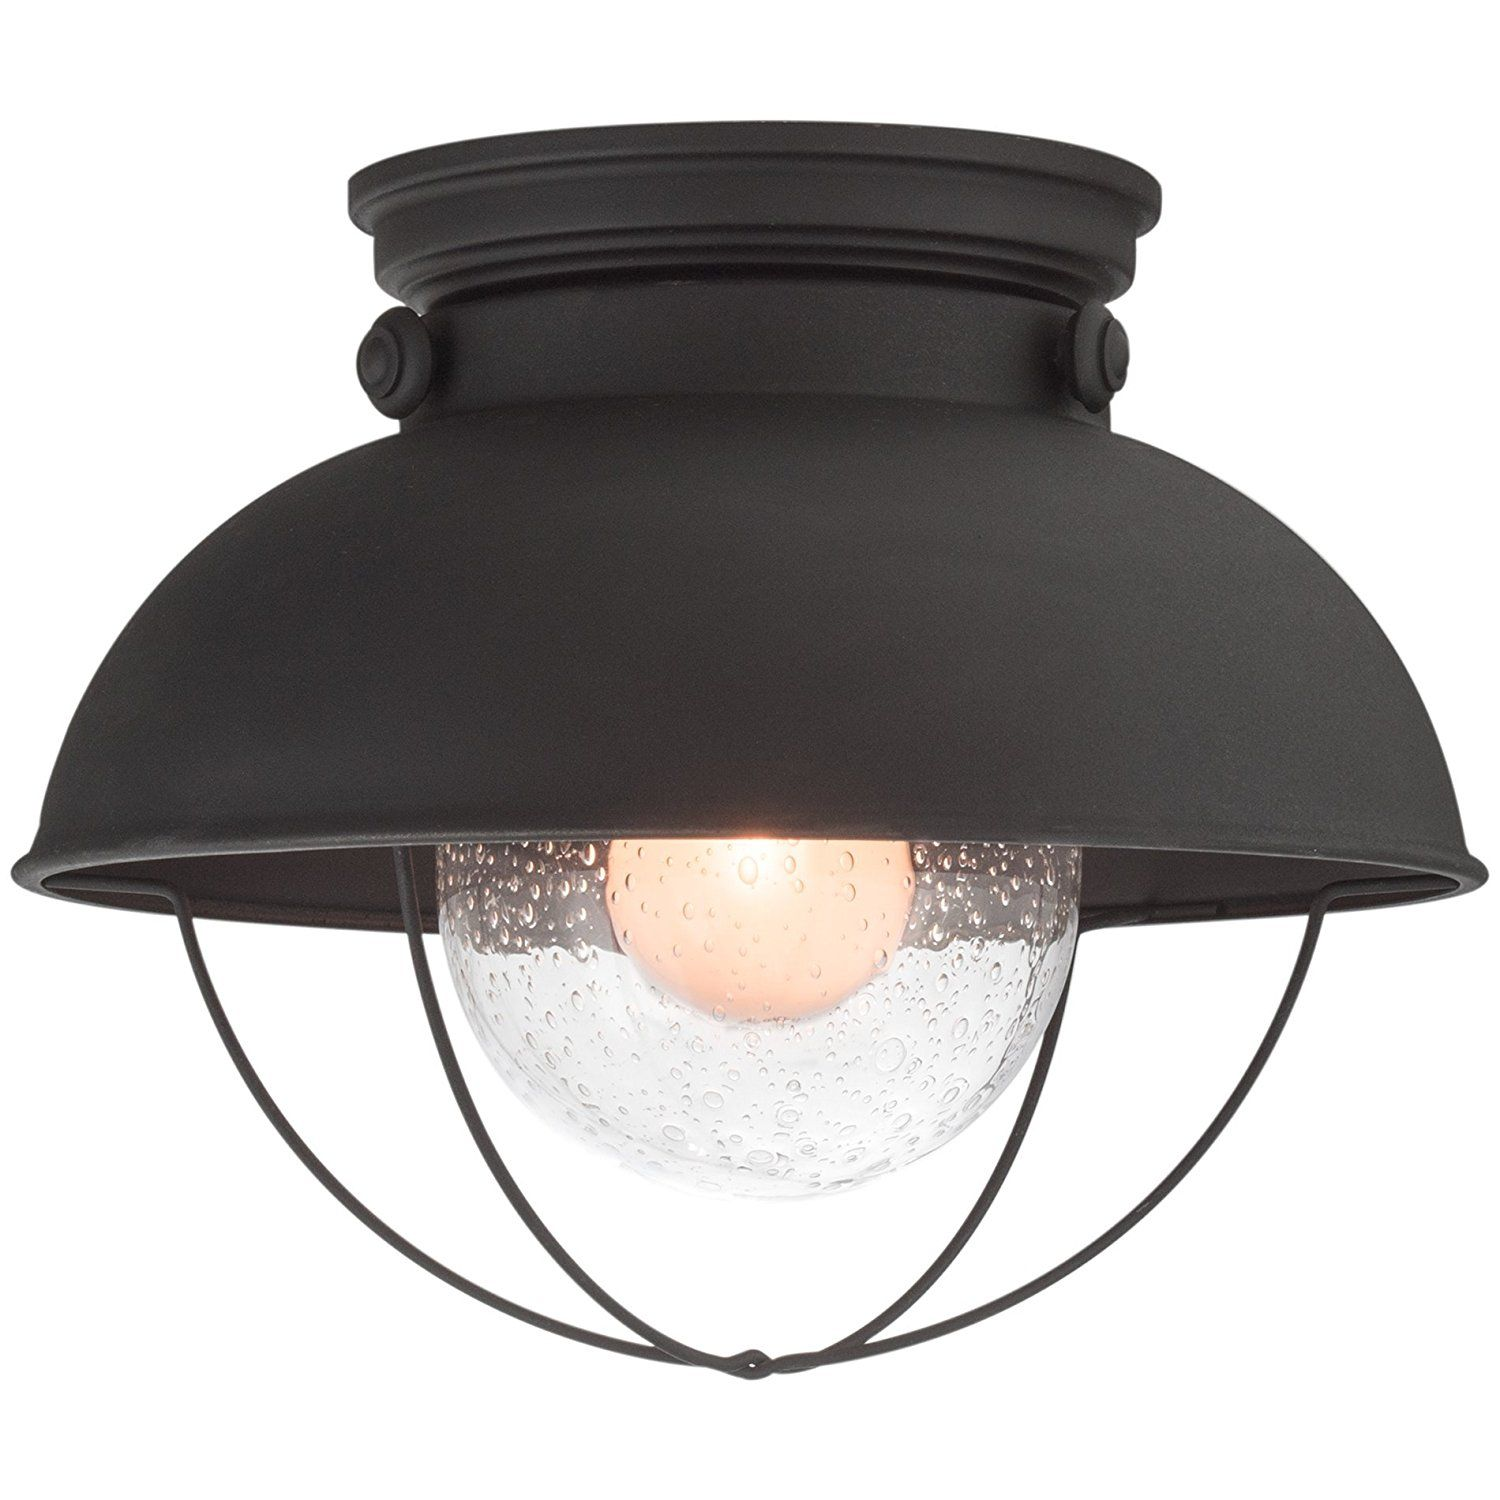 Revel Bayside 11 Industrial Flush Mount Ceiling Light Seeded Glass Shade Matte Black Finis Outdoor Ceiling Lights Light Fixtures Flush Mount Ceiling Lights